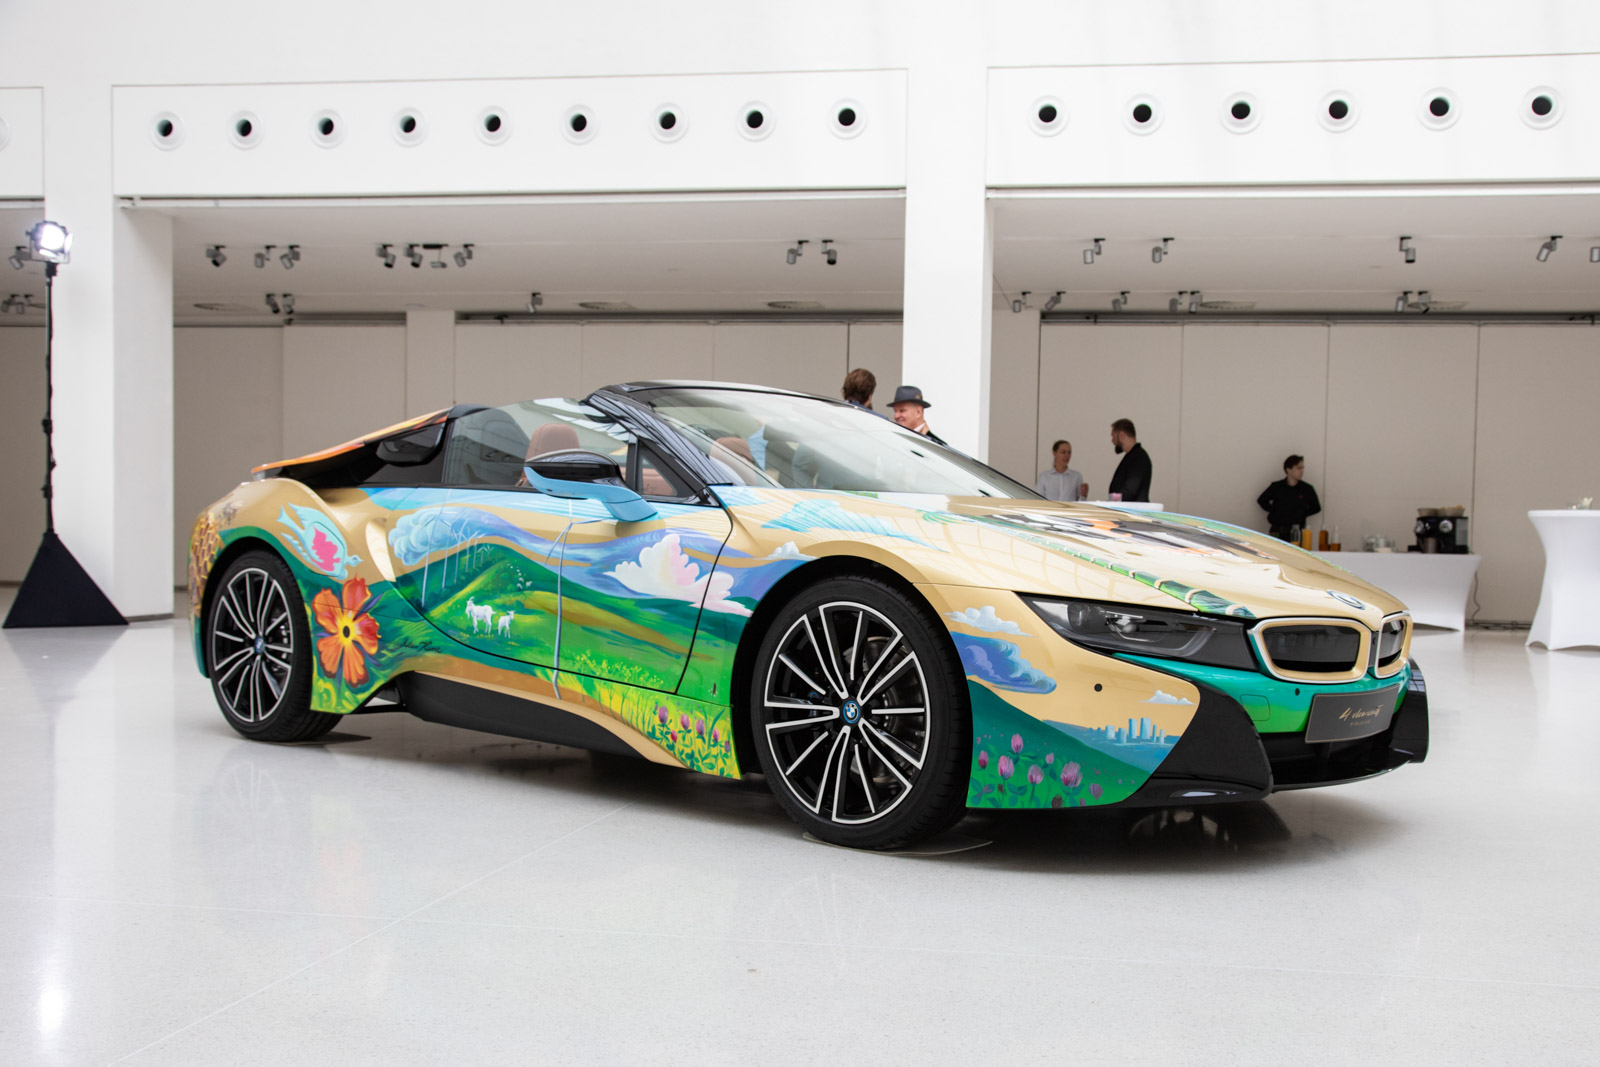 Unofficial Art Car